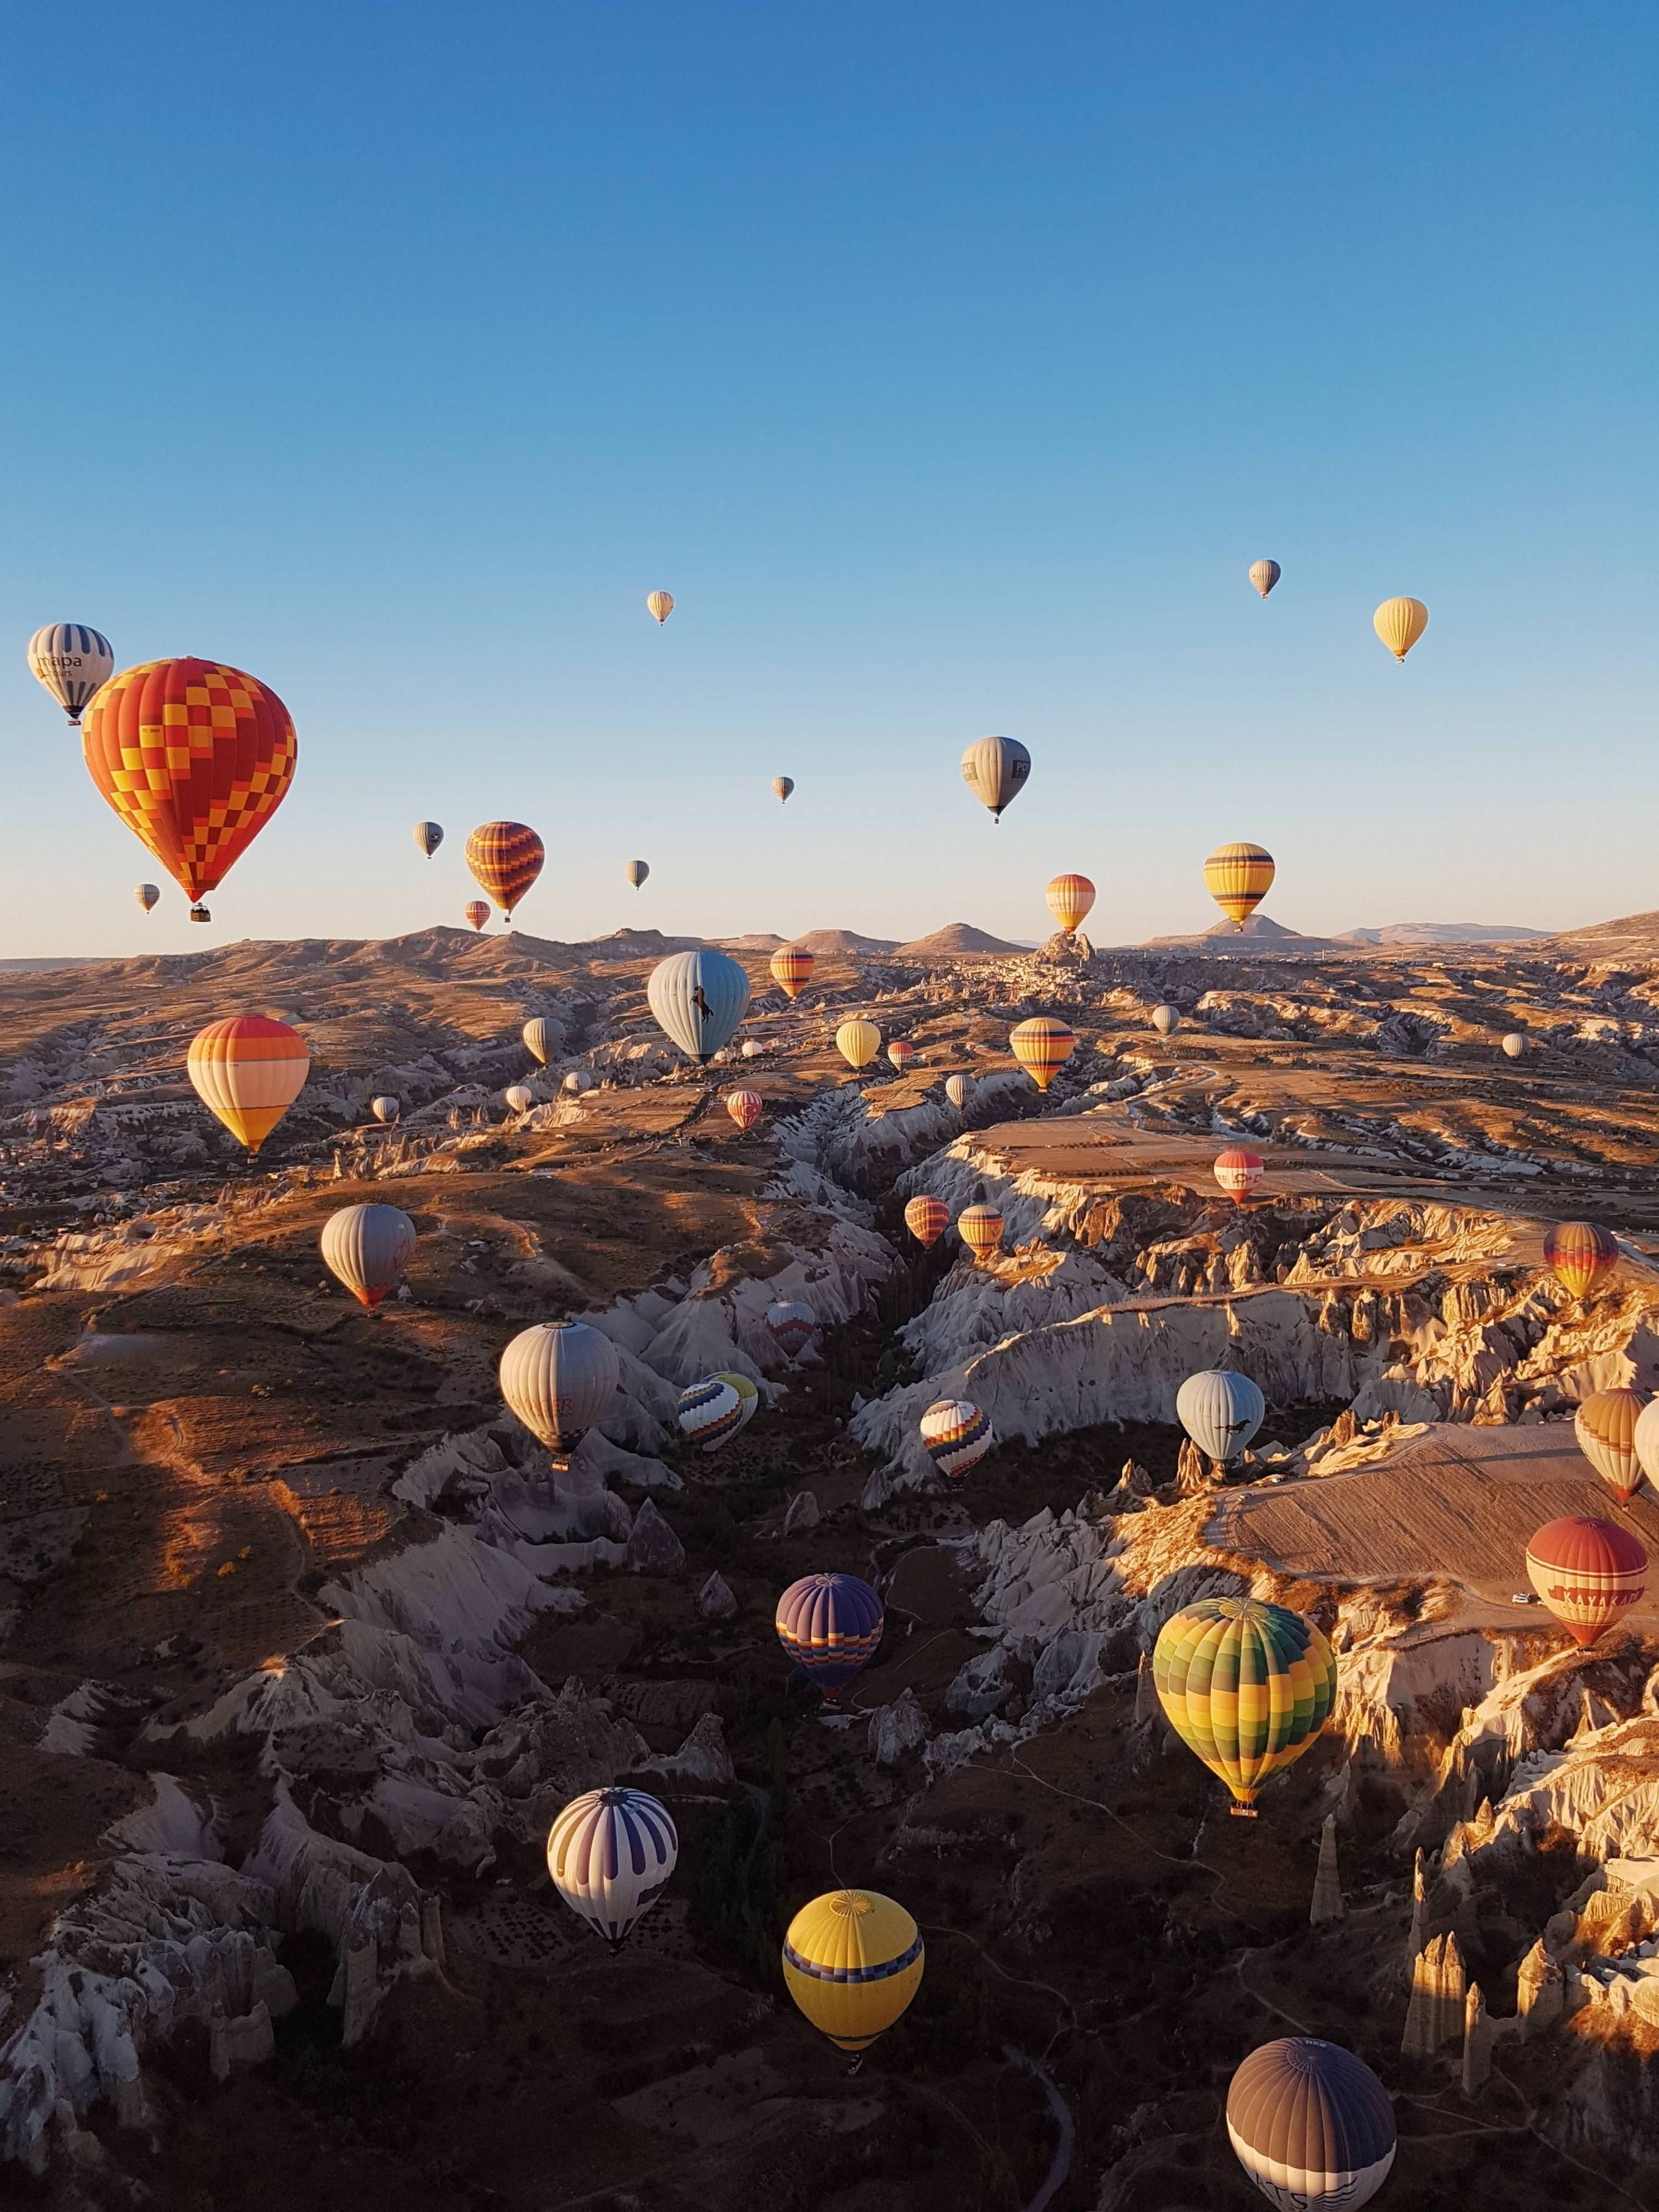 Breathtaking view from my hot air balloon ride today in